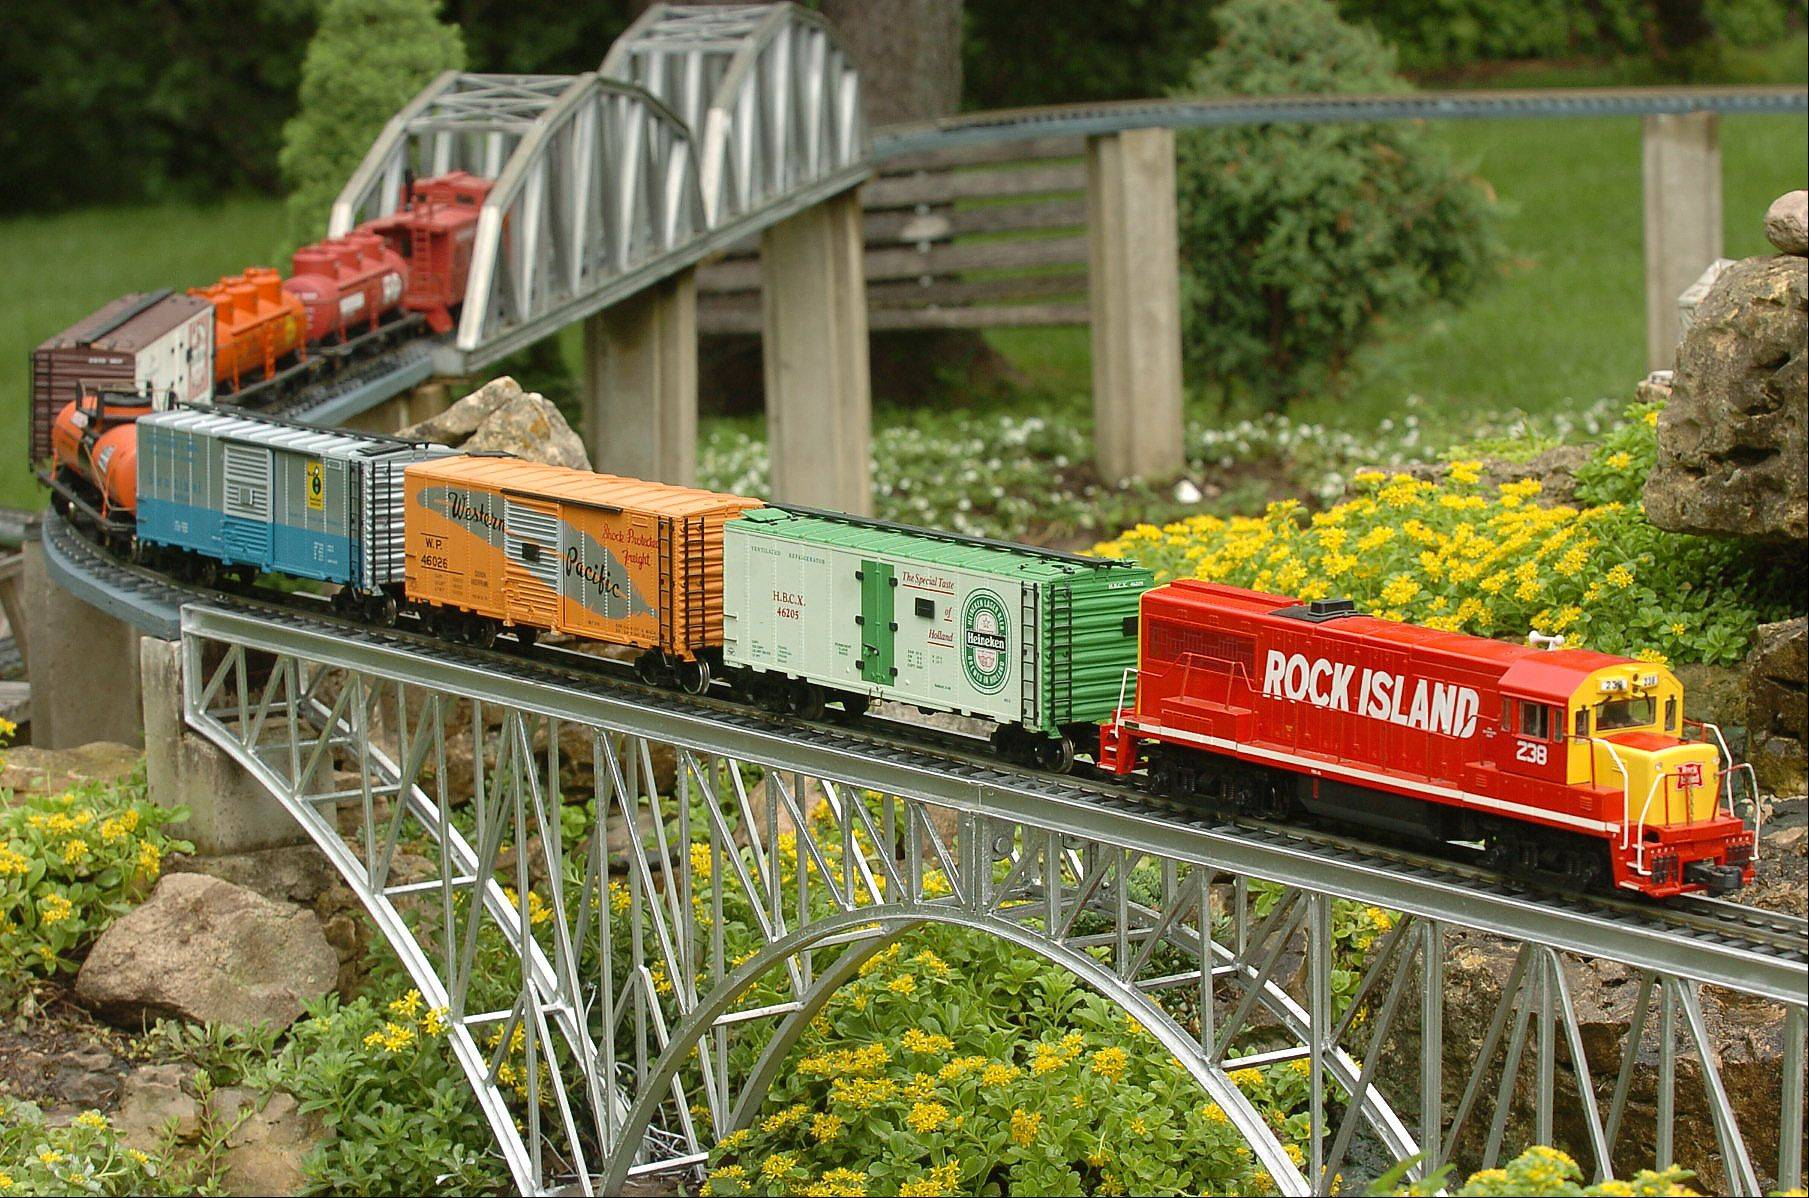 Elaine Silets' garden railroad in North Barrington.